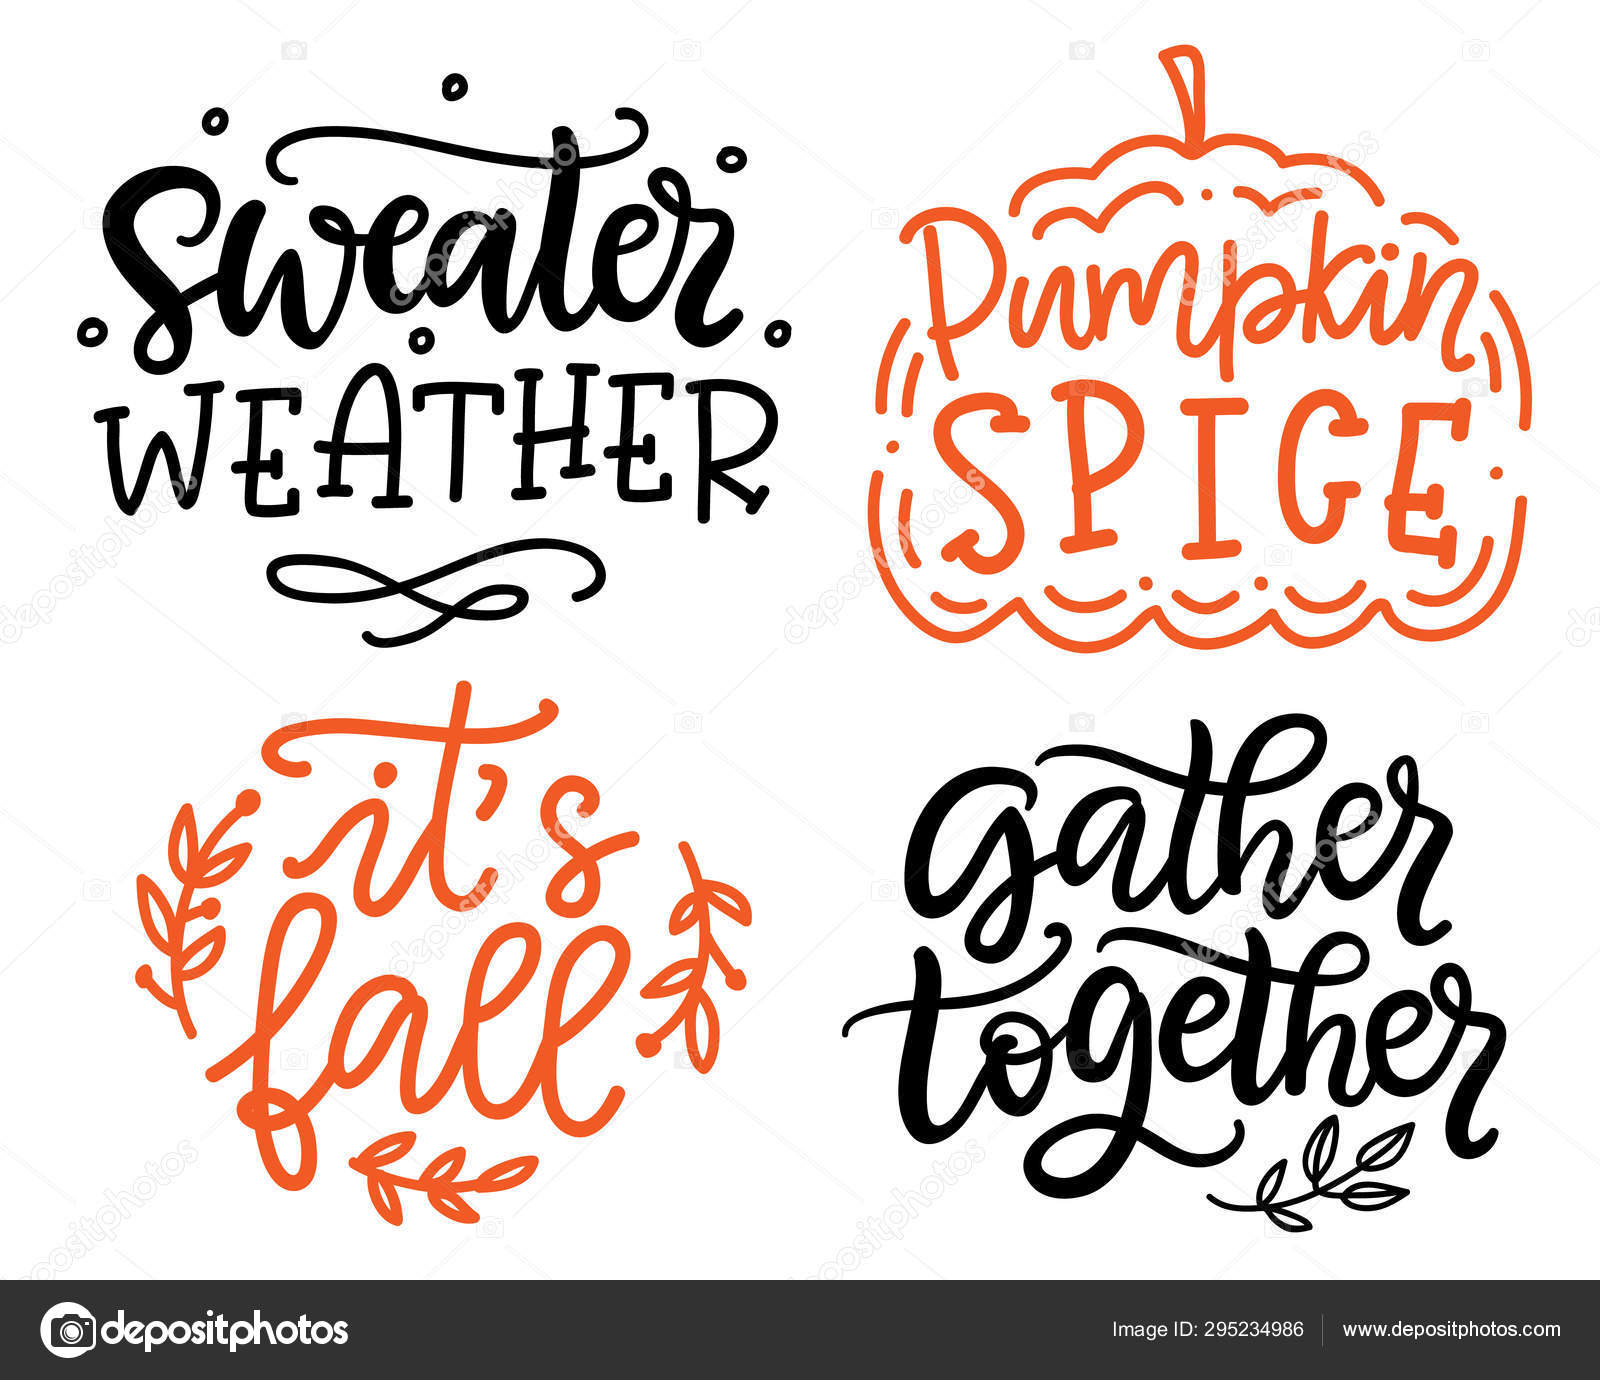 Gather together, Pumpkin spice, Sweater weather, Its fall ...